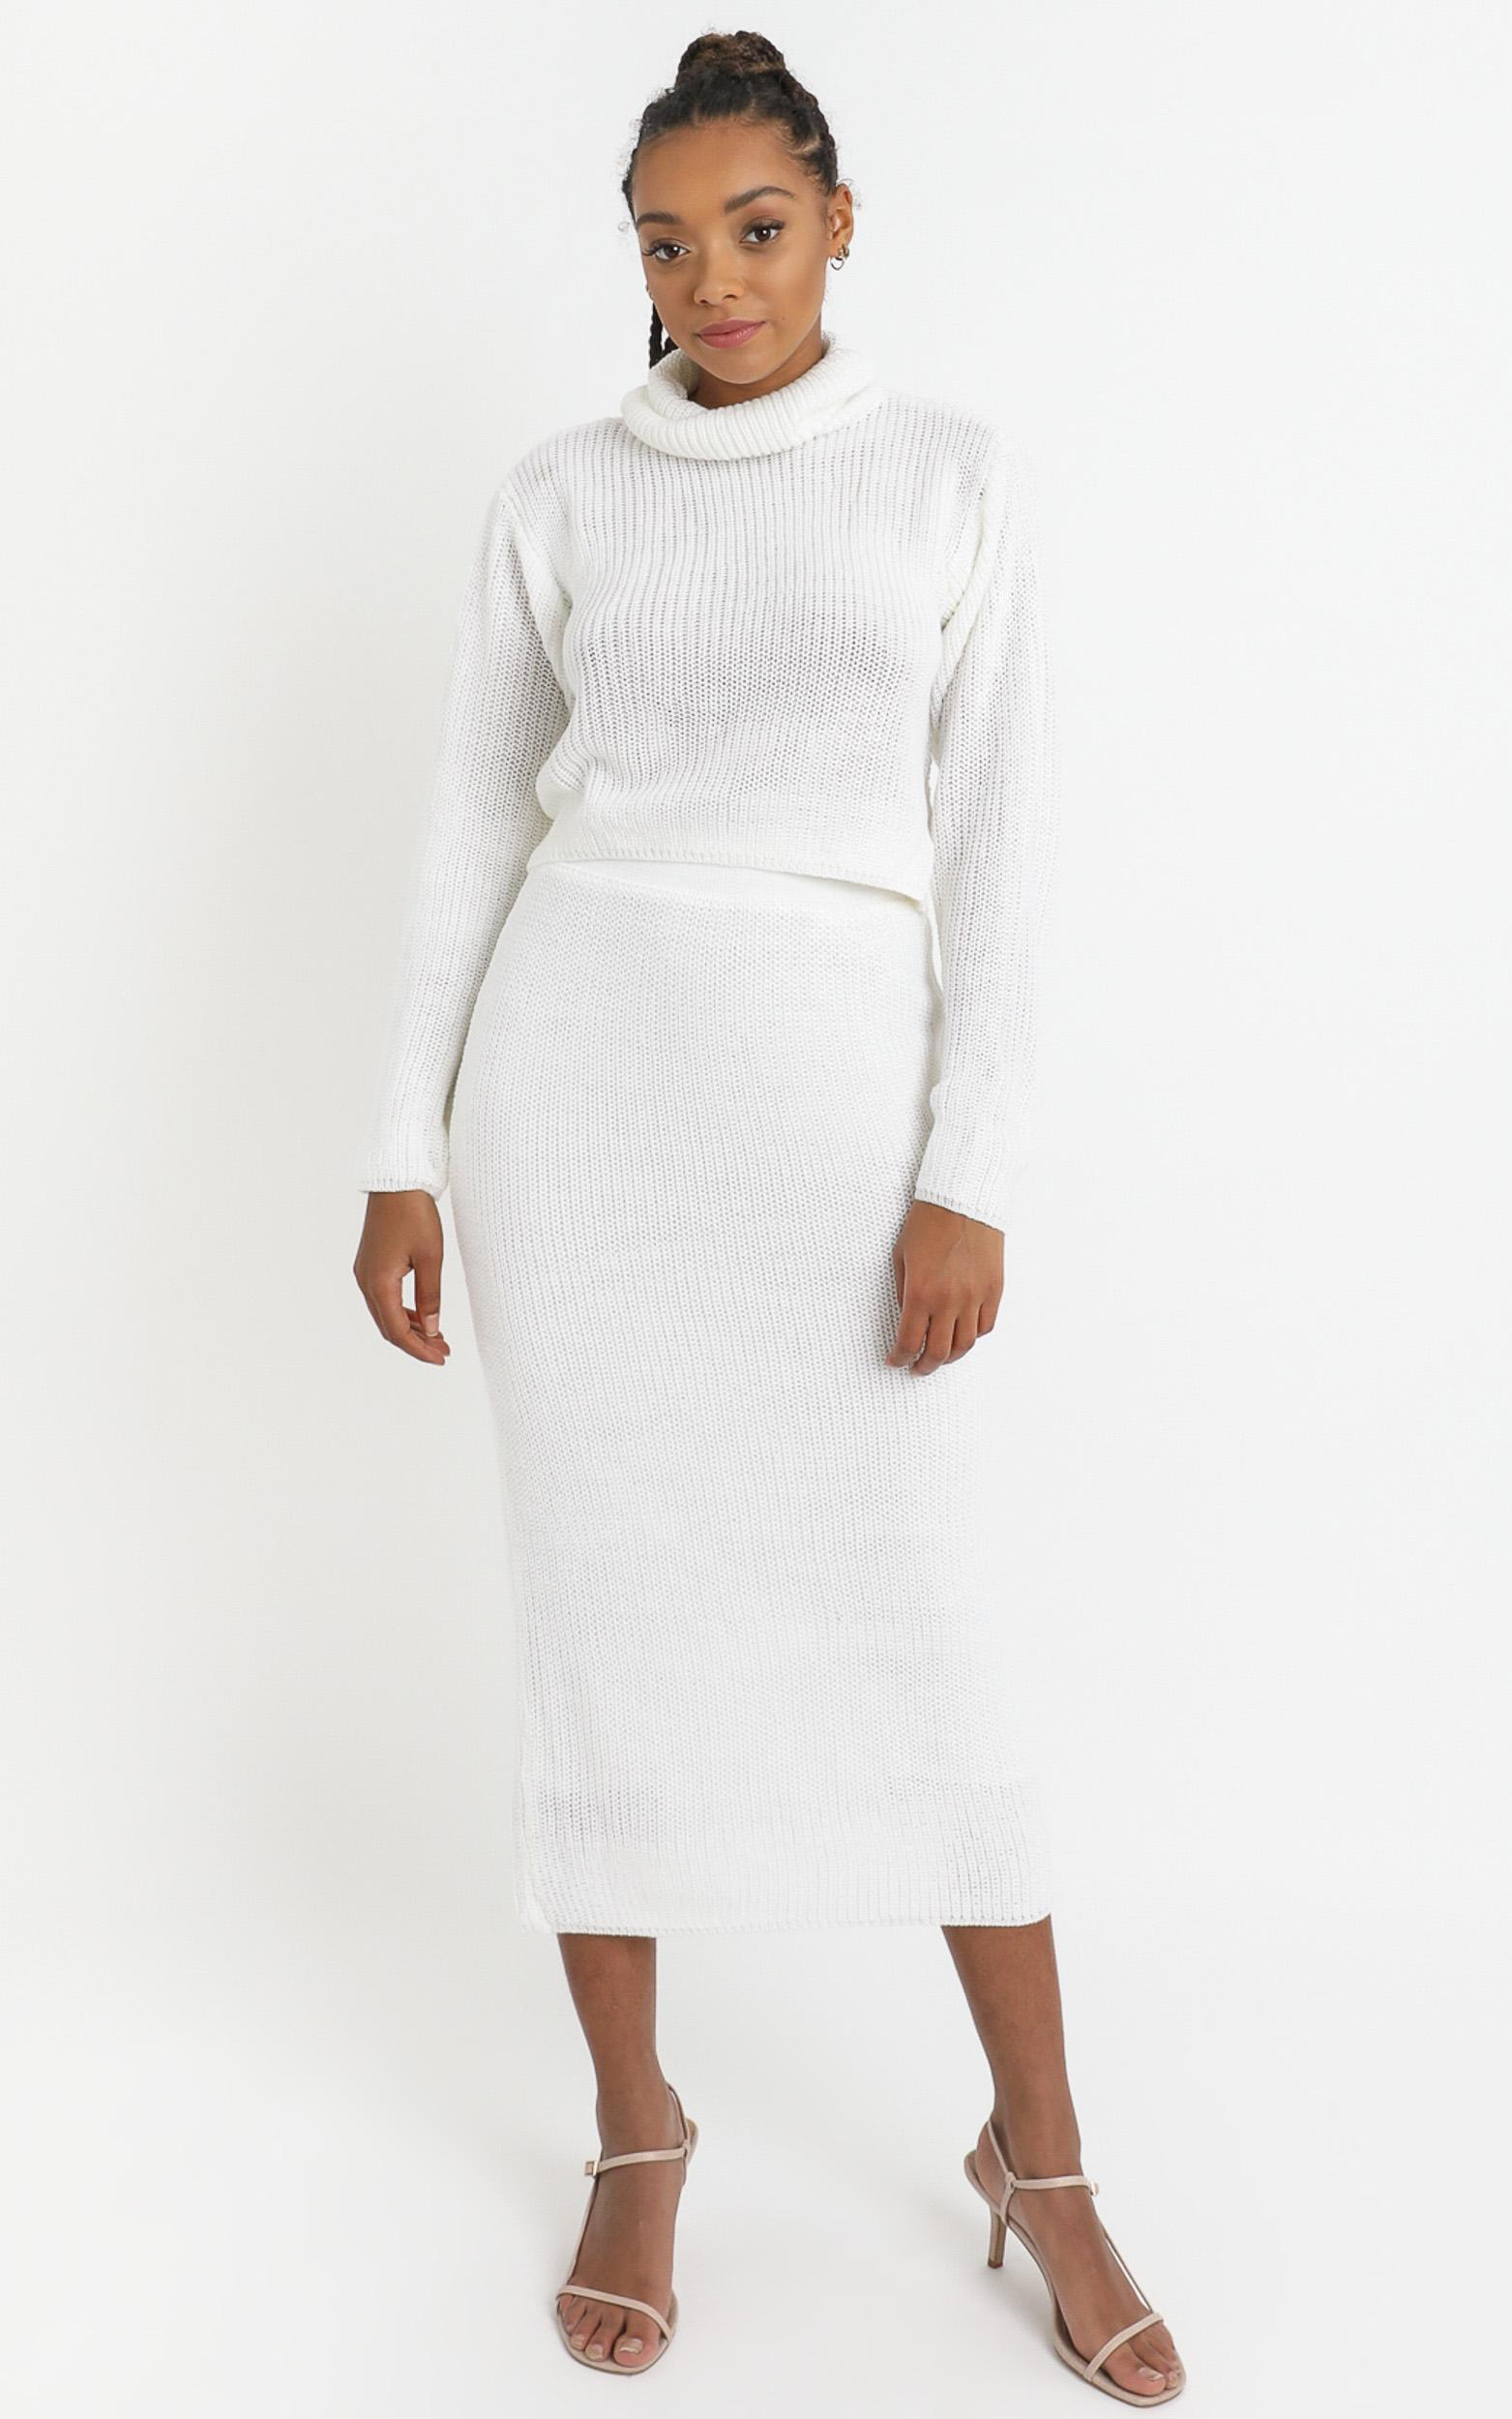 Edwynna Jumper in White - 8 (S), White, hi-res image number null